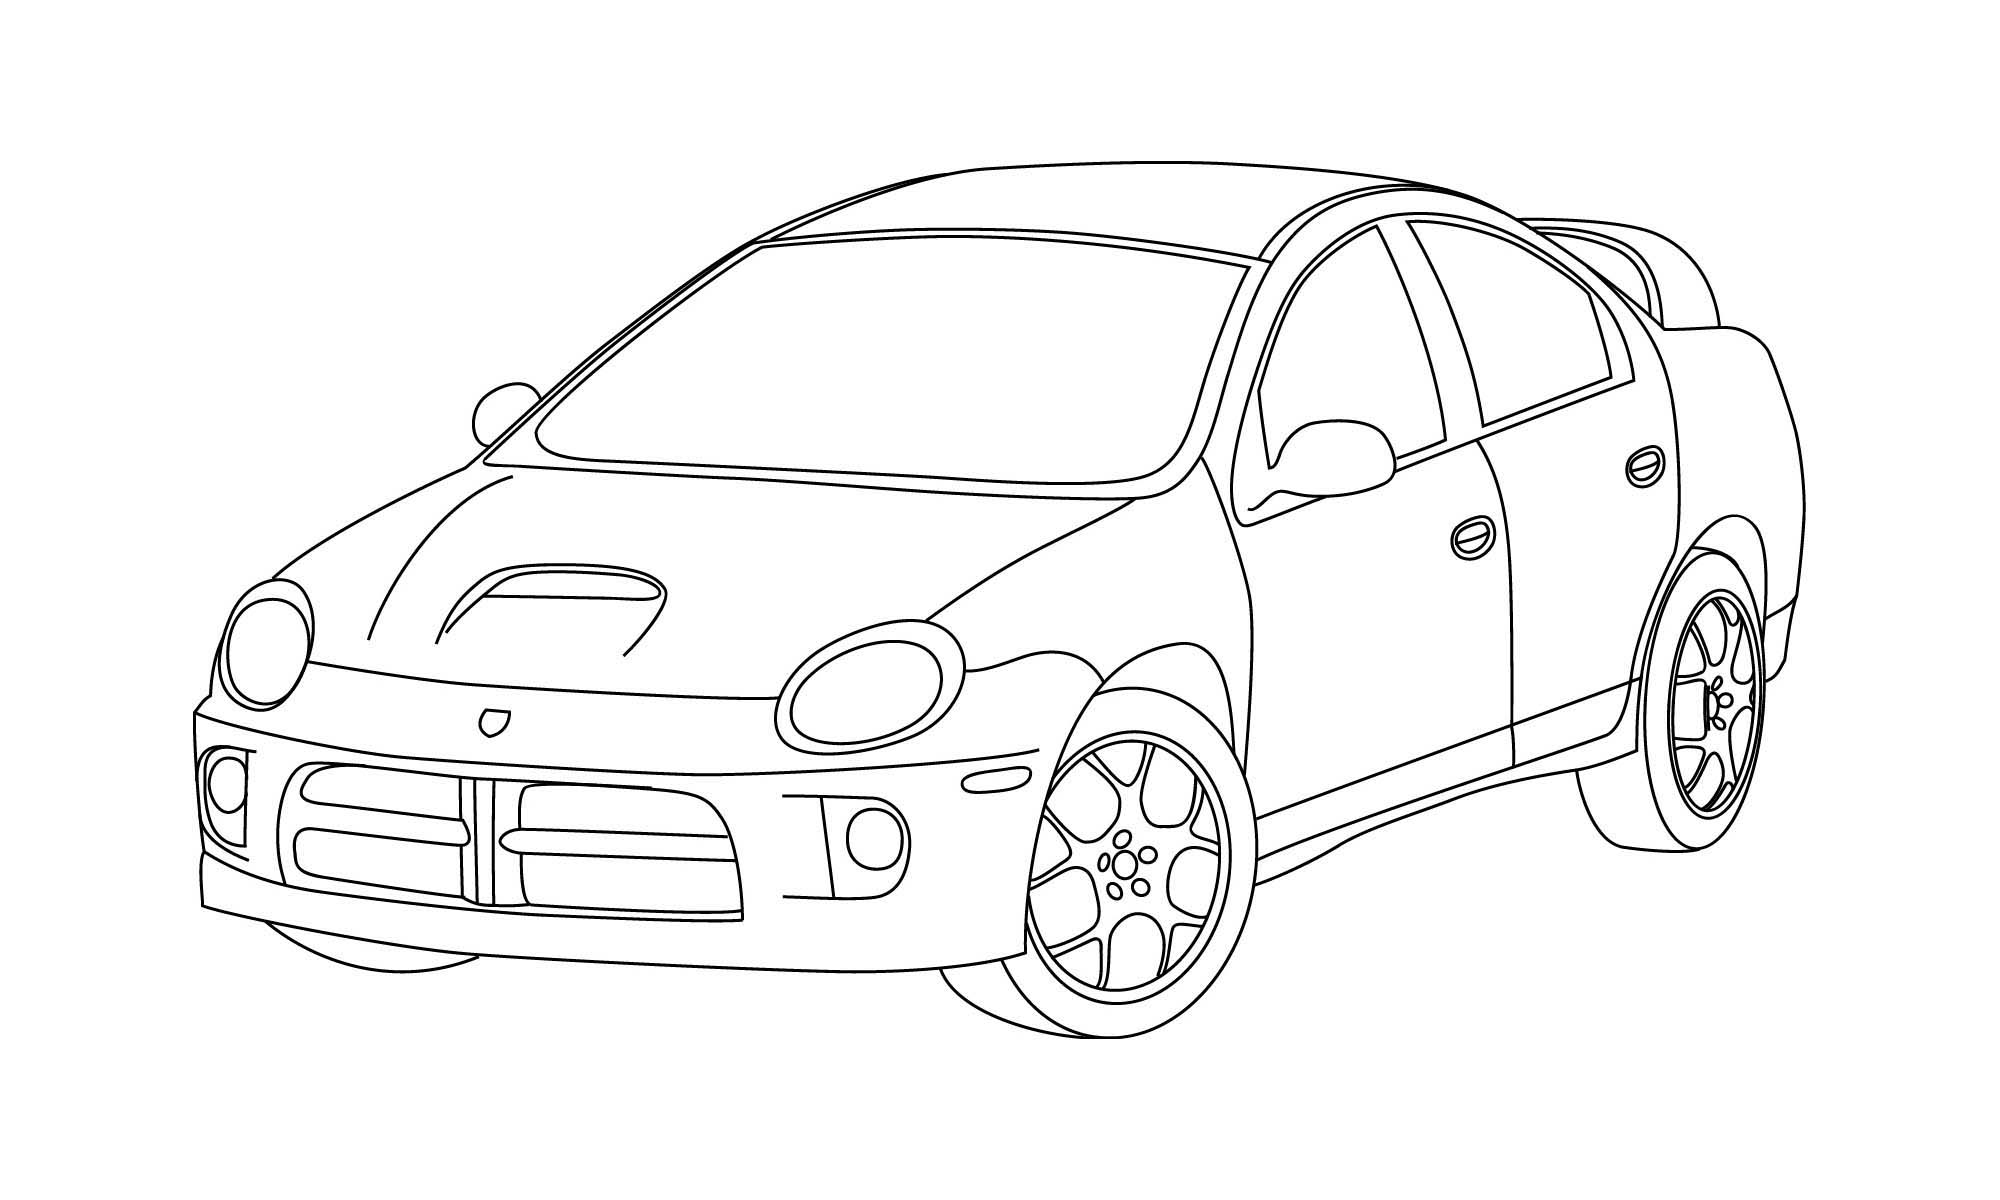 srt-4 line drawing